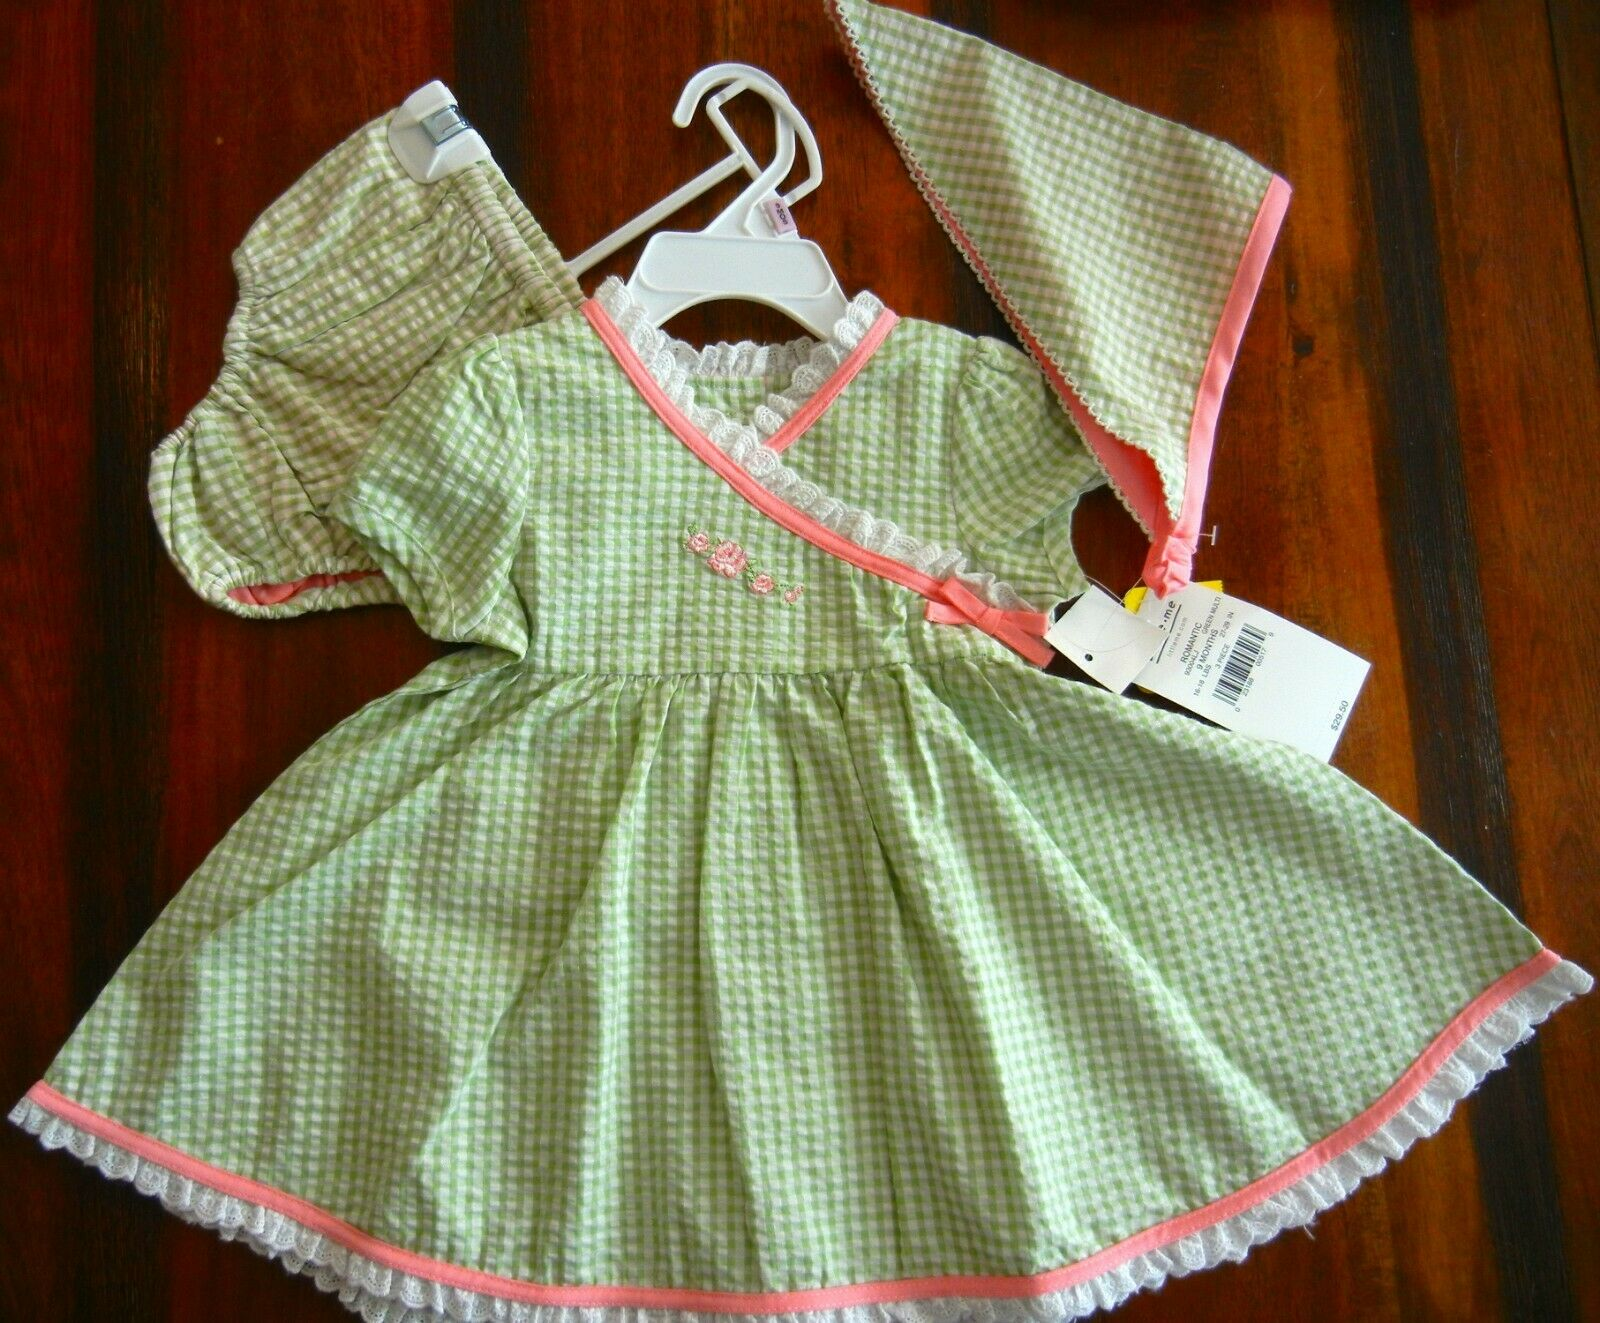 LITTLE ME BABY GIRL 3-PC DRESS SET SZ 9 MON. GREEN GINGHAM S